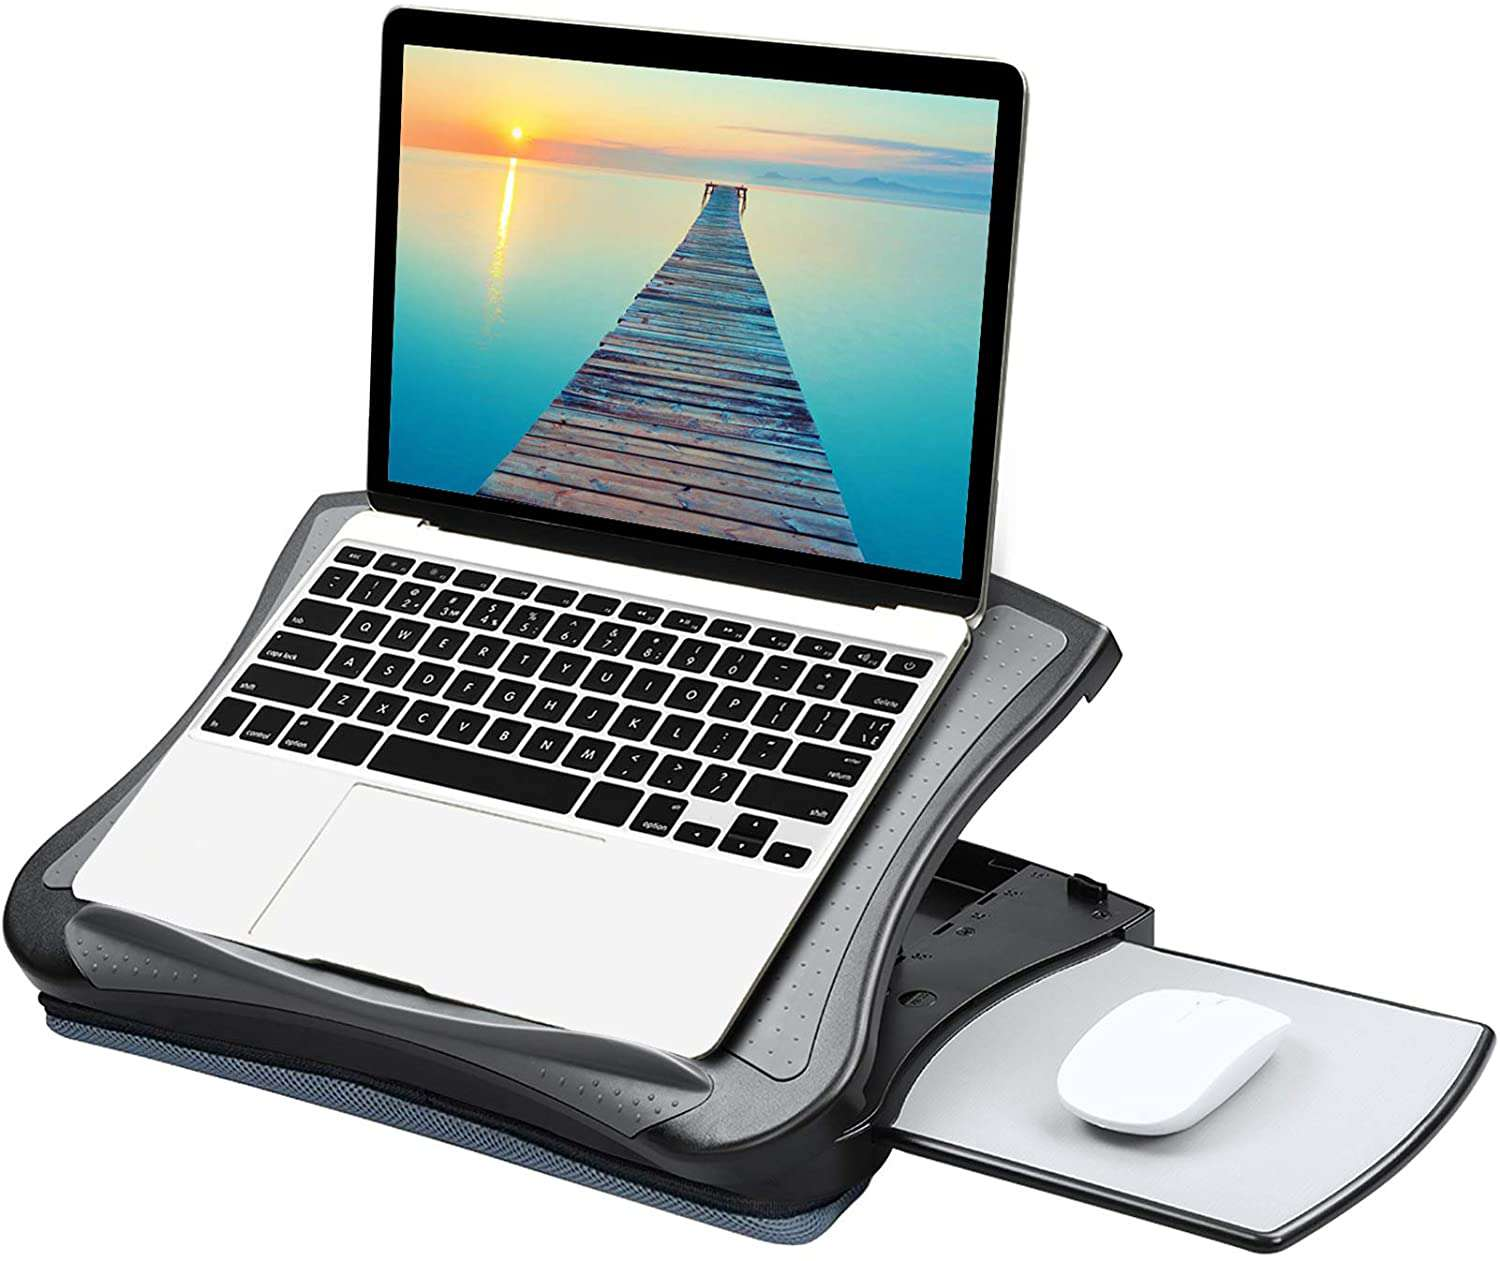 Huanuo Adjustable Lap Desk with Cooling Fan